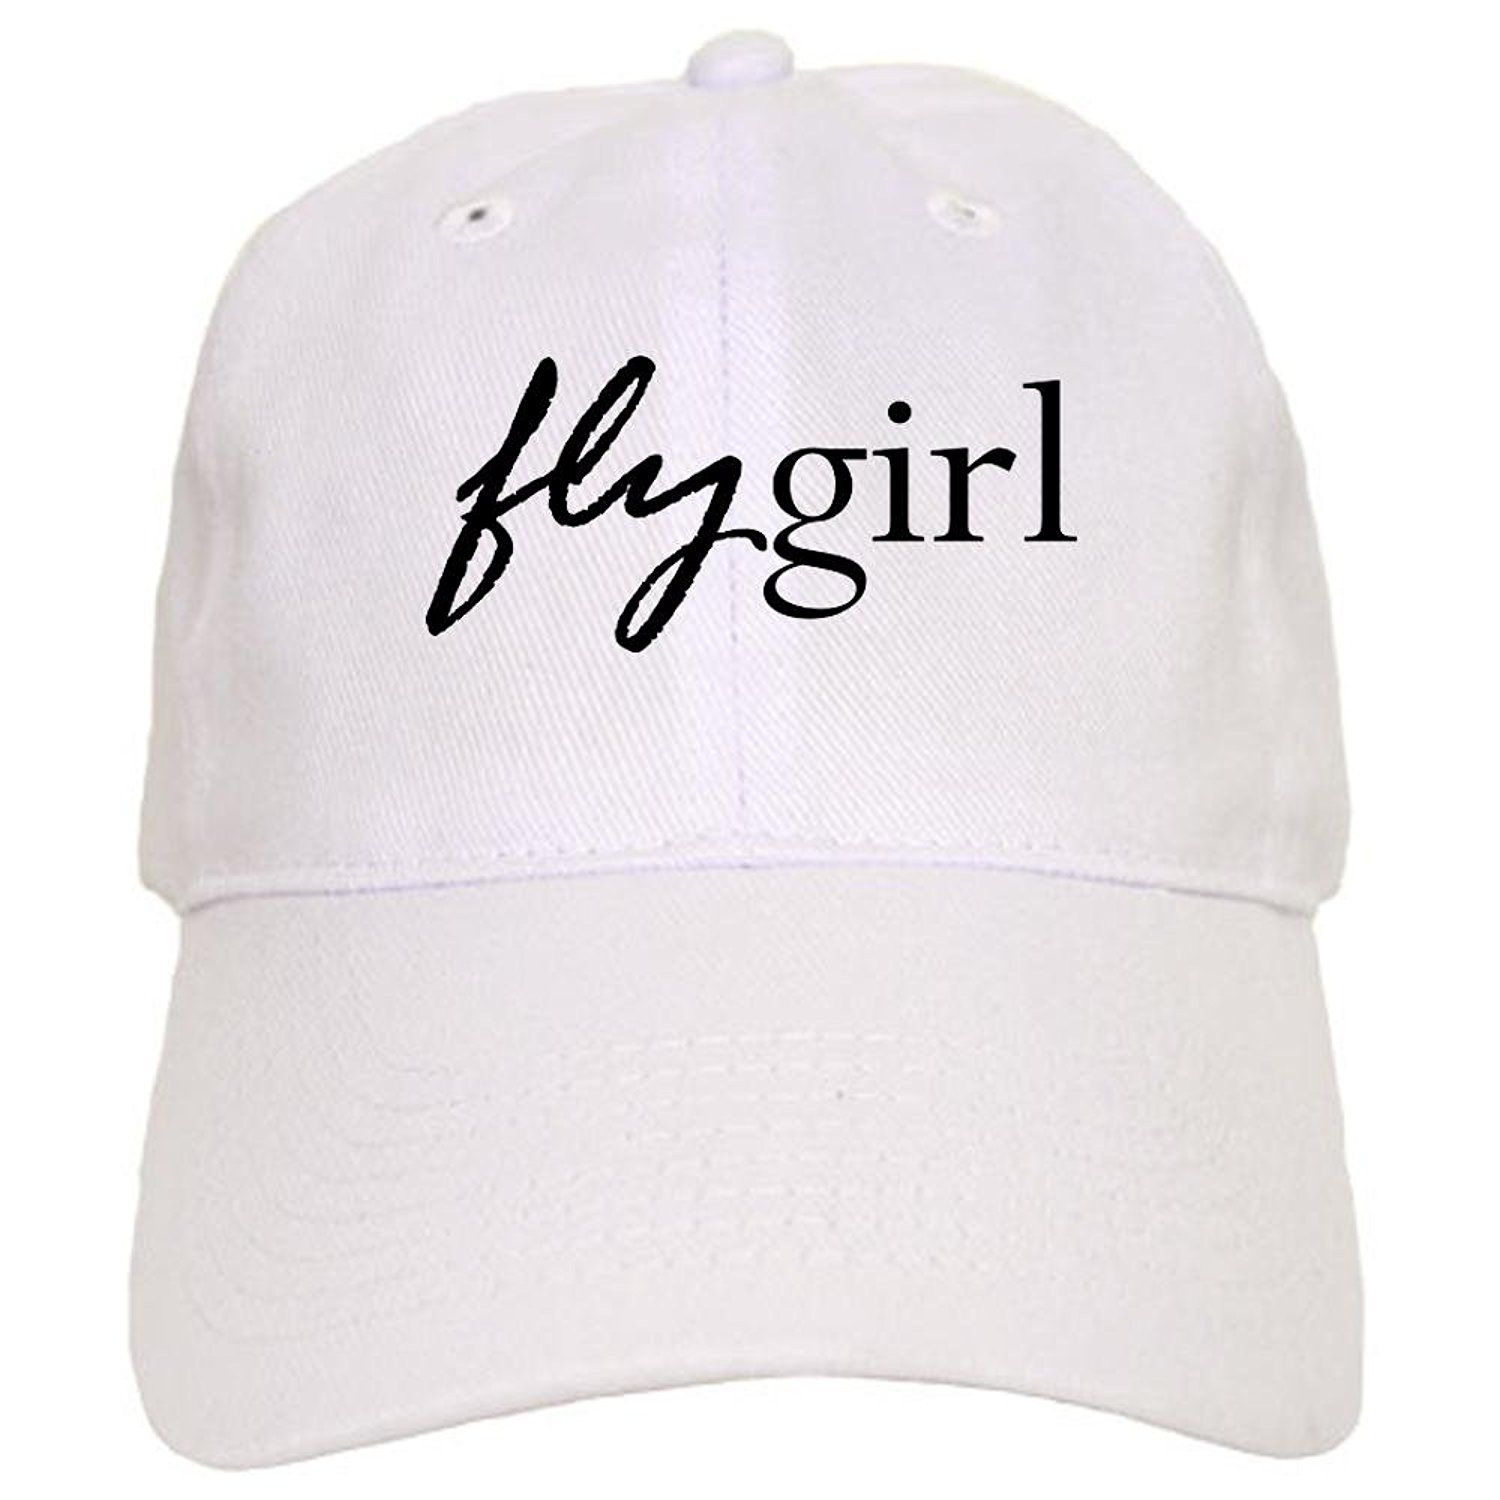 CafePress - Fly Girl Cap - Baseball Cap with Adjustable Closure ... 79f998e7fe70